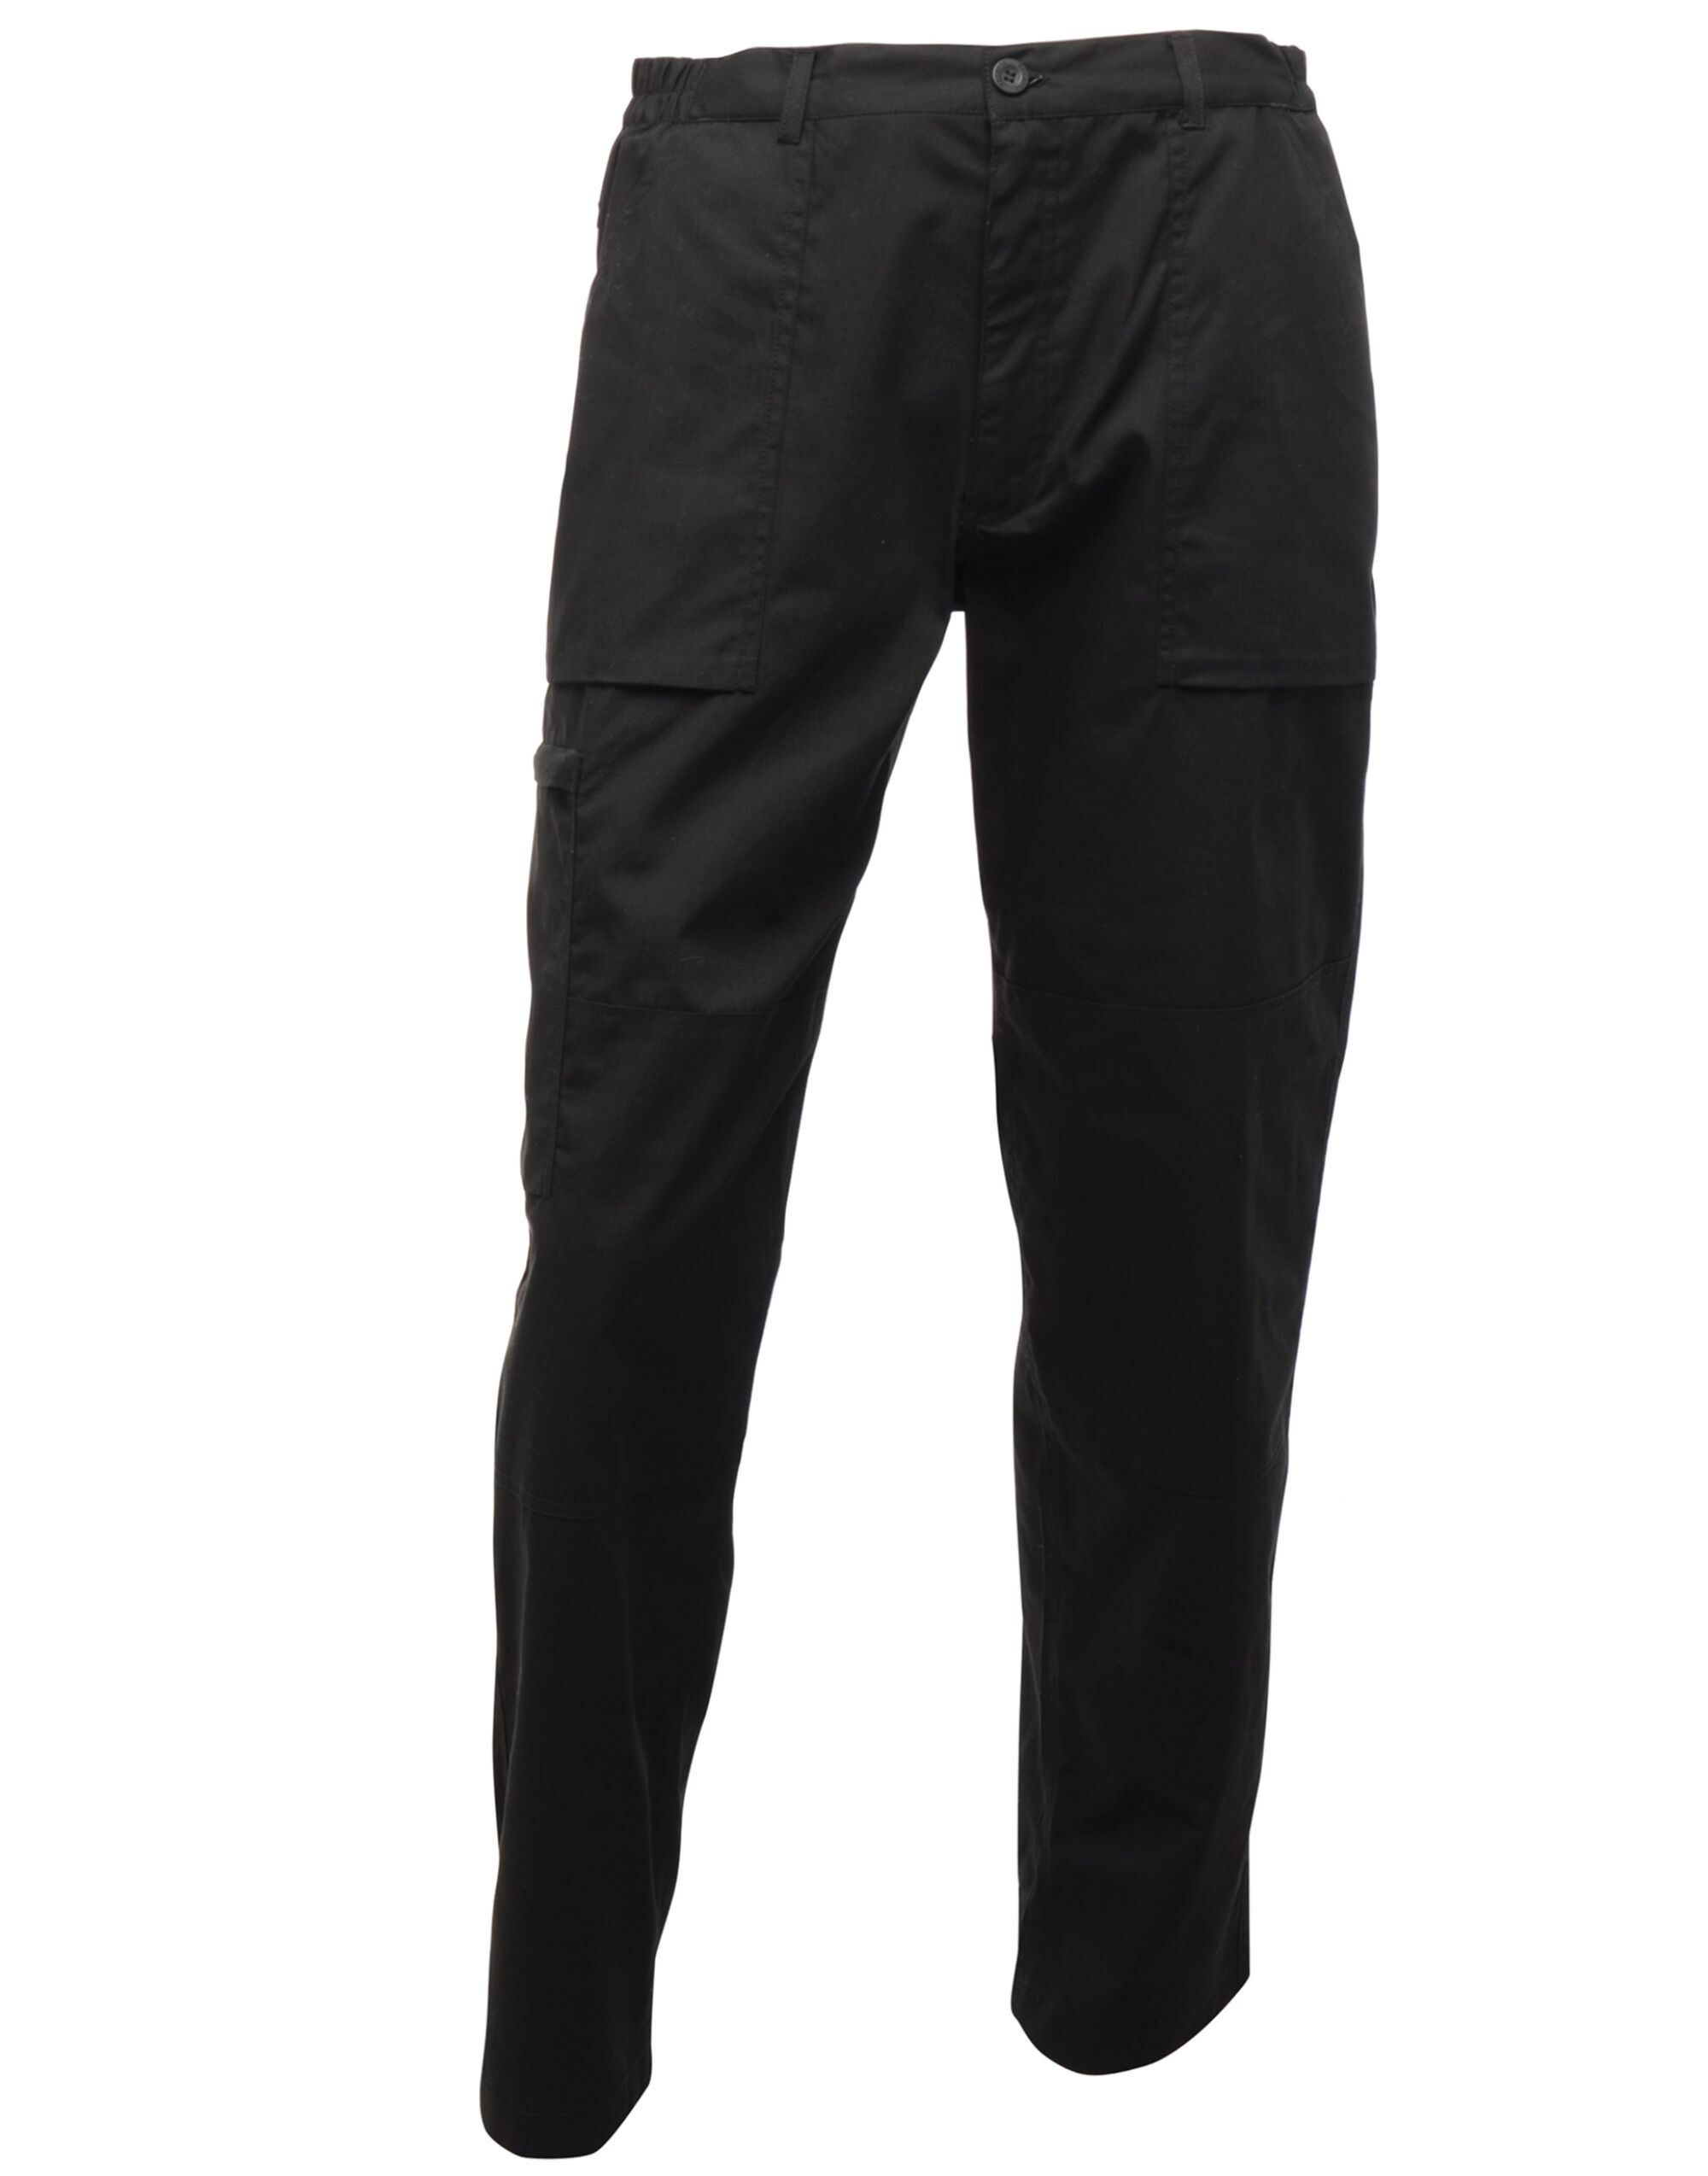 Men's New Action Trouser (short)